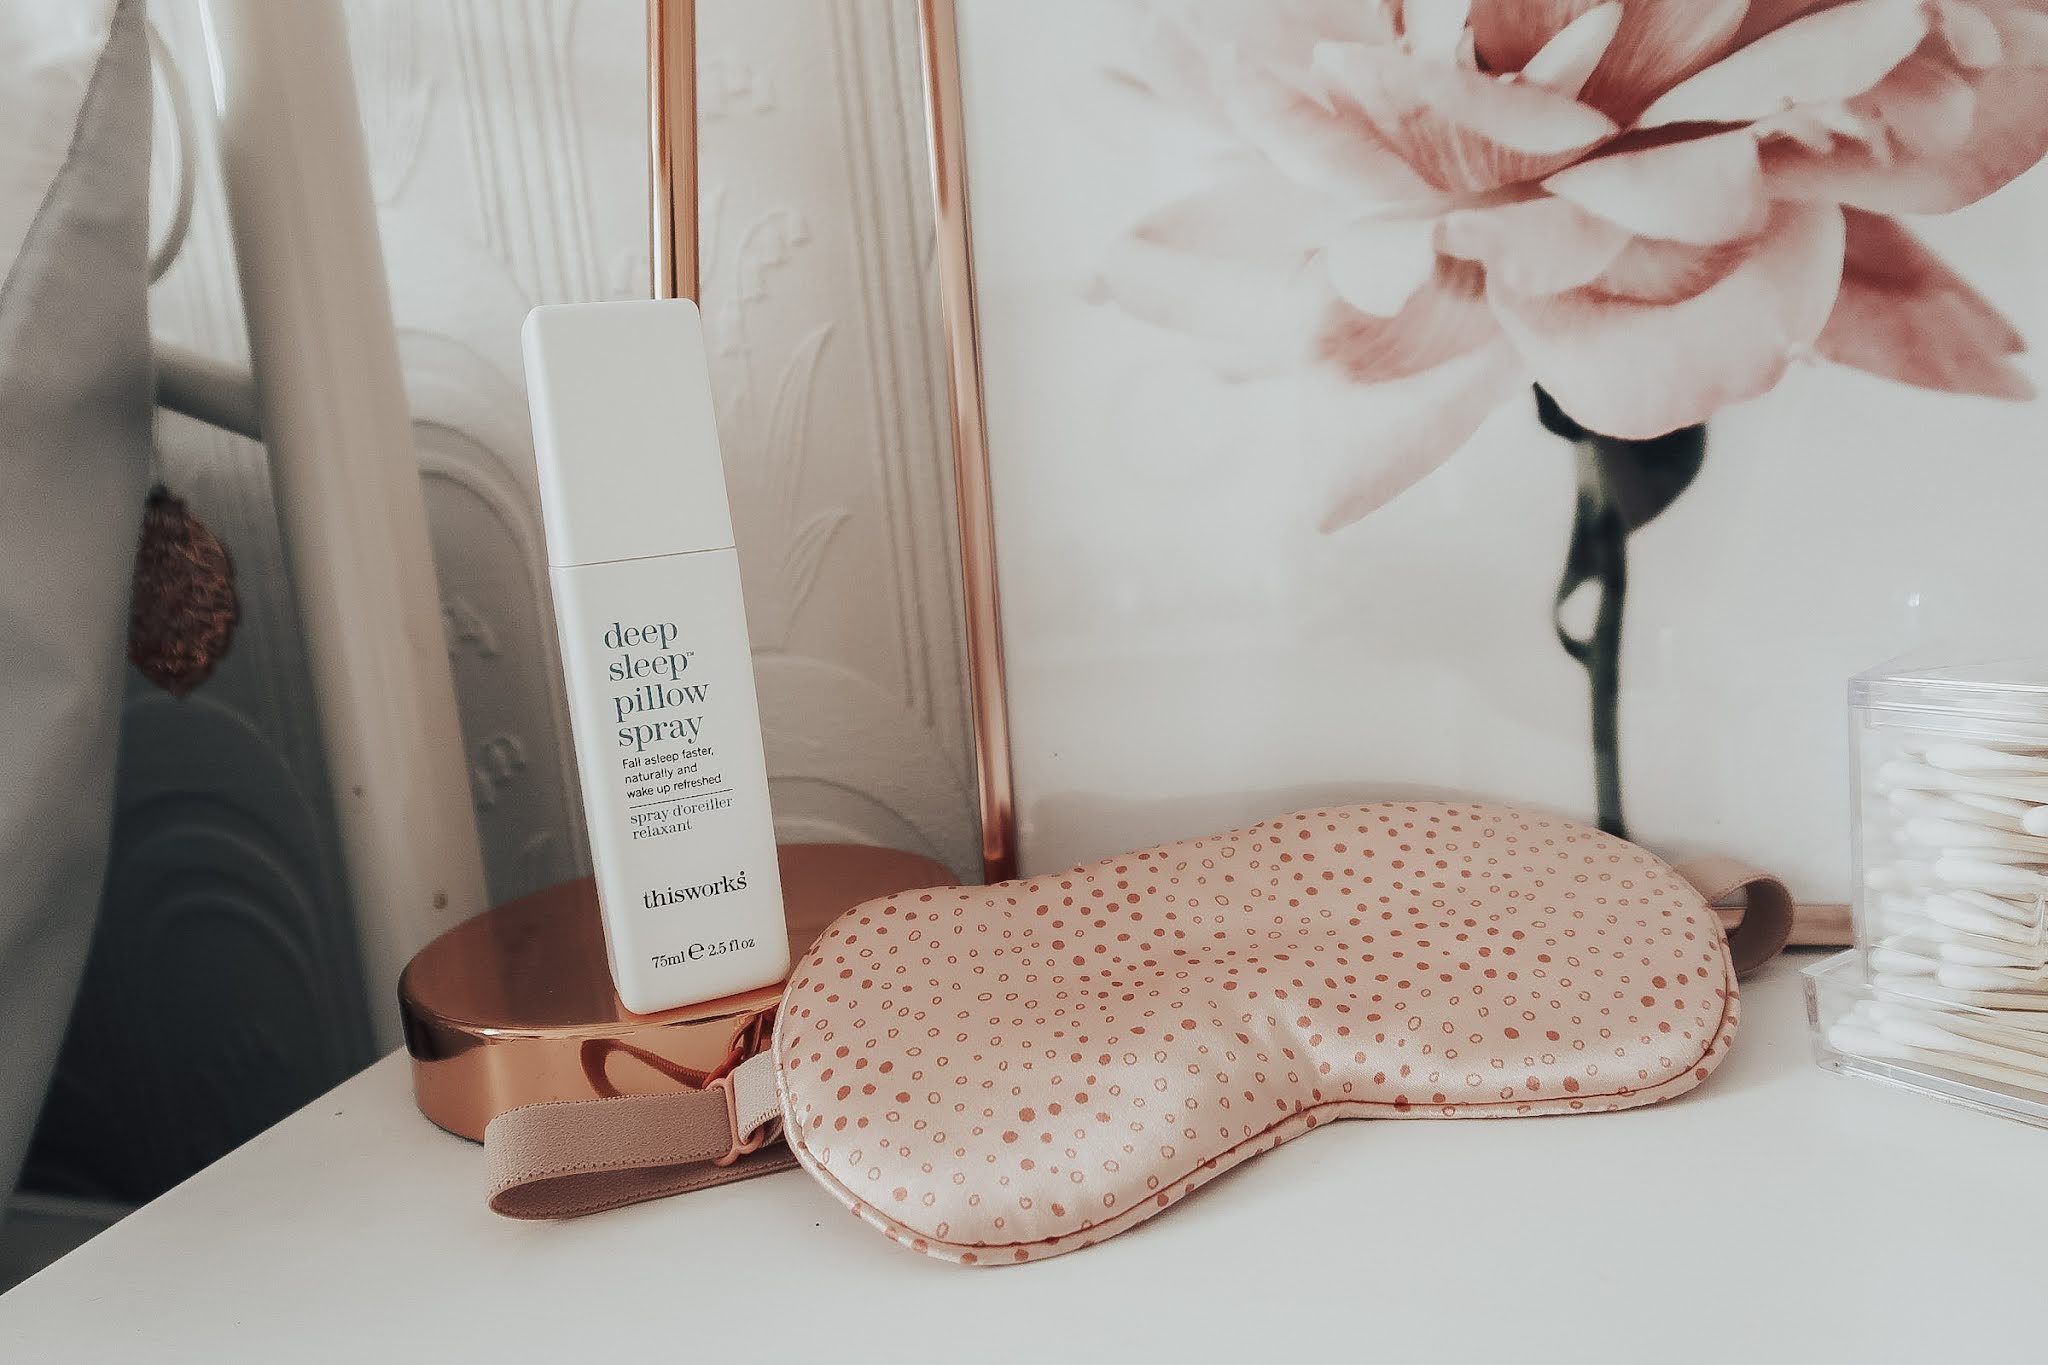 This Works Deep Sleep Pillow Spray: Does It Really Work?